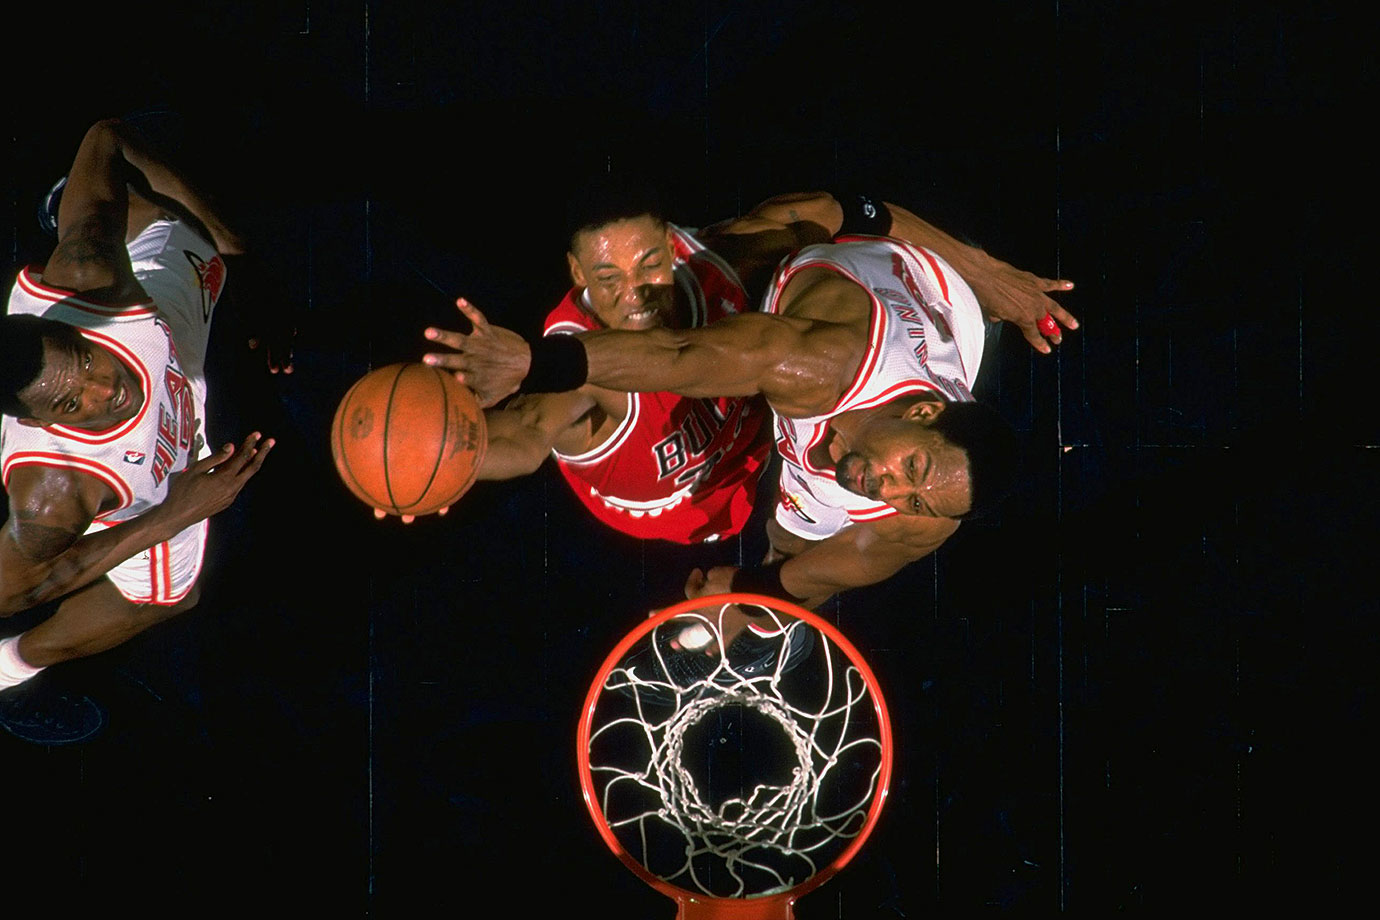 February 23, 1996 — Chicago Bulls vs. Miami Heat